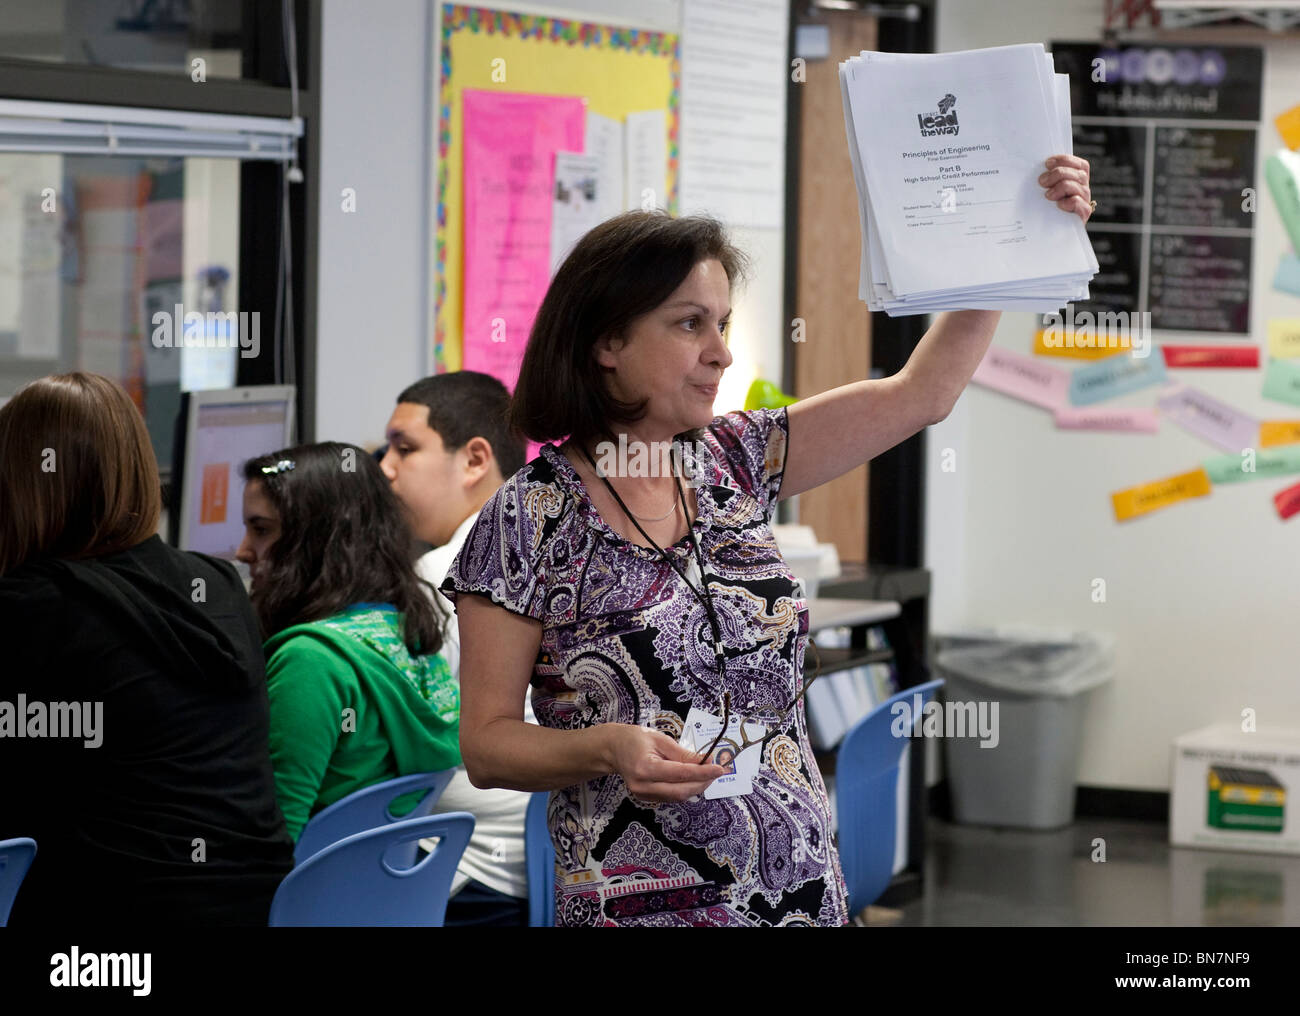 Anglo female high school engineering teacher holds up final exams in classroom Stock Photo